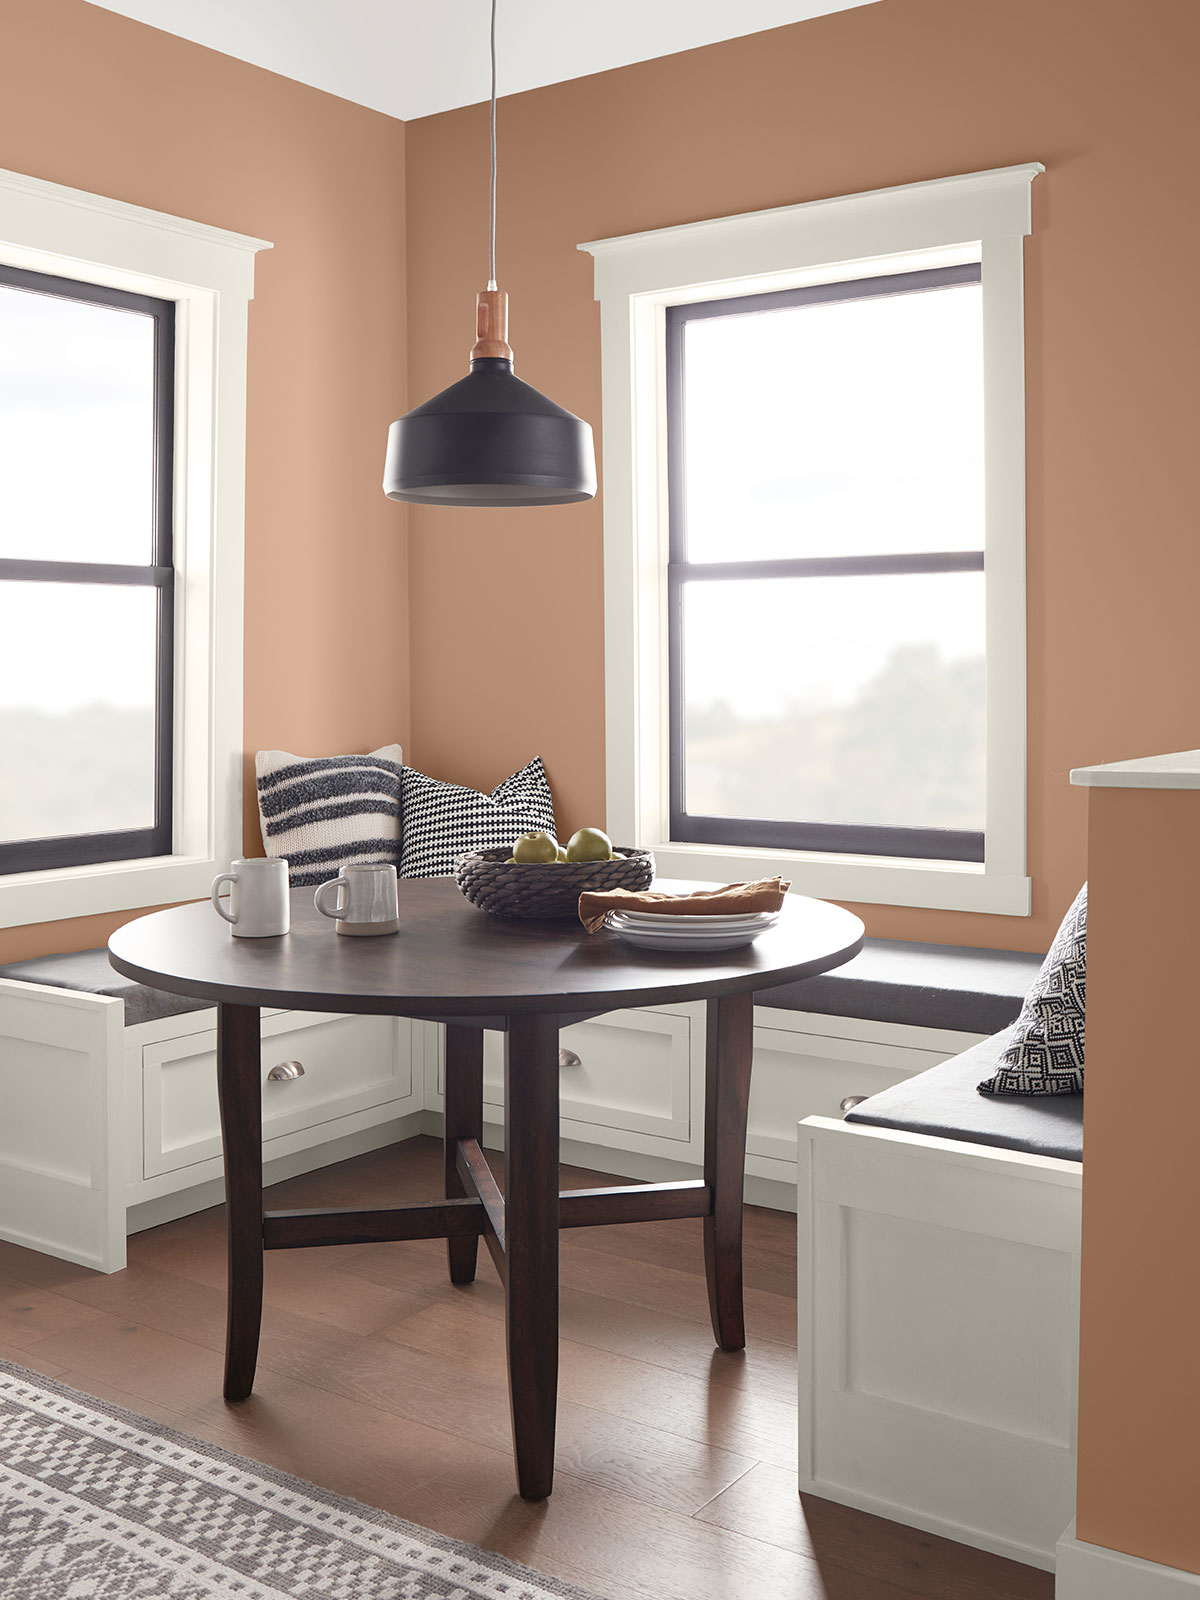 A kitchen nook with white built-in seats sitting below two windows. The table is a dark wood tone. The walls are painted in Canyon Dusk.